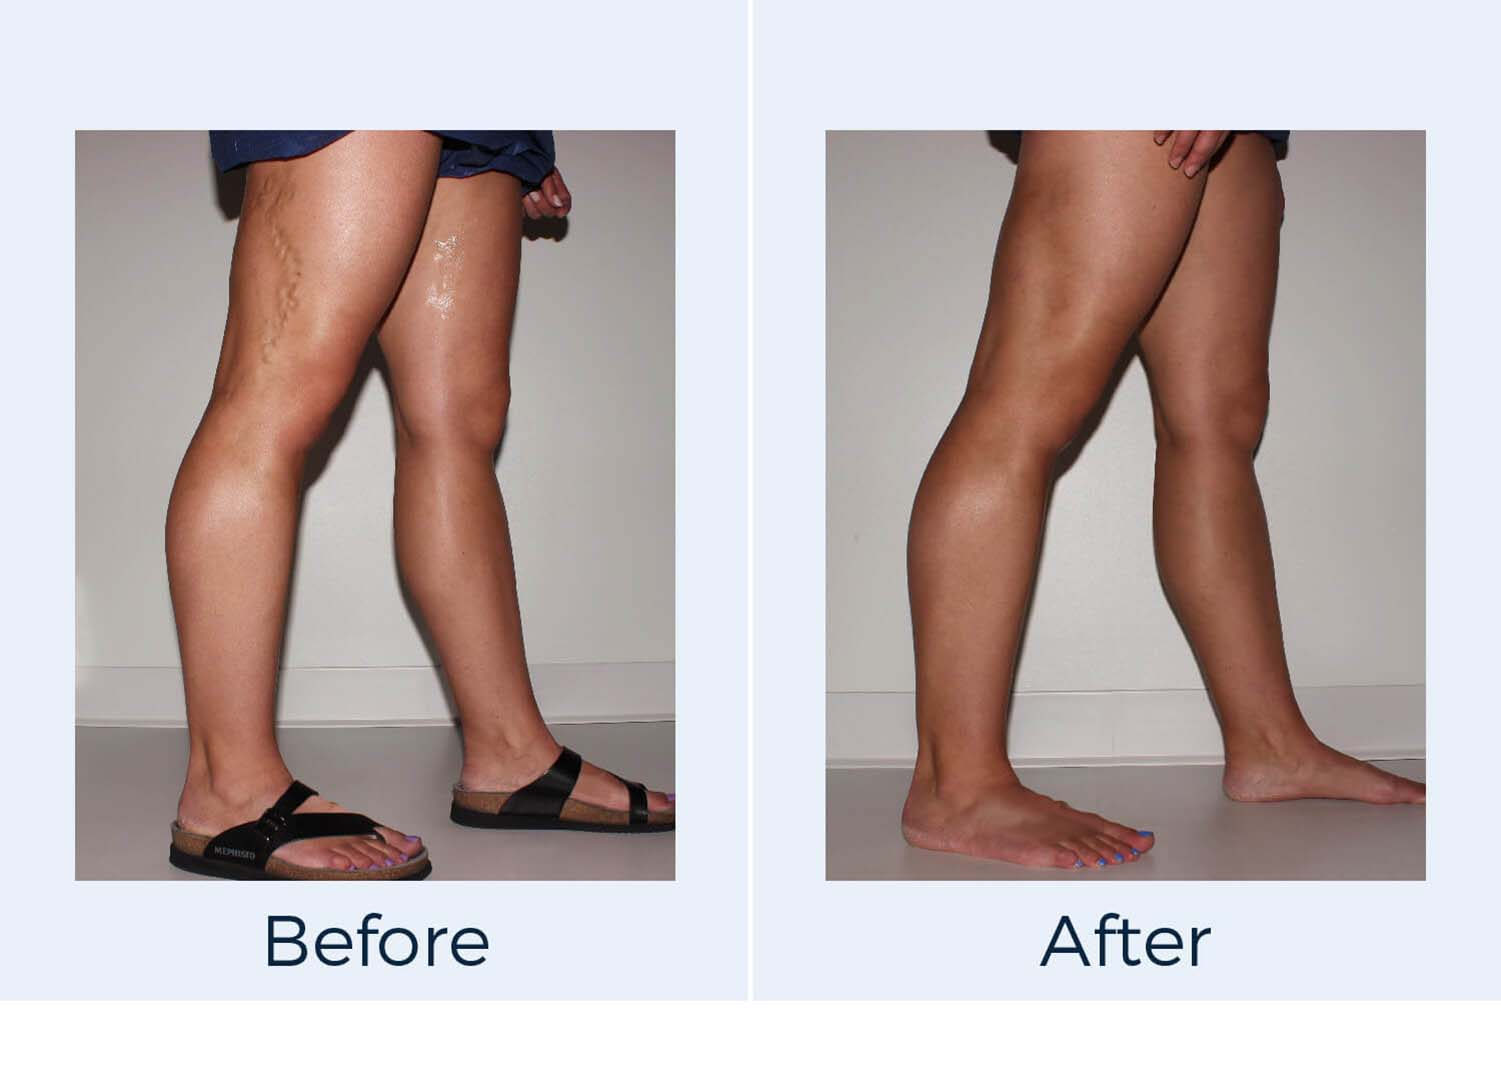 varicose vein treatment and spider vein treatments before and after photos